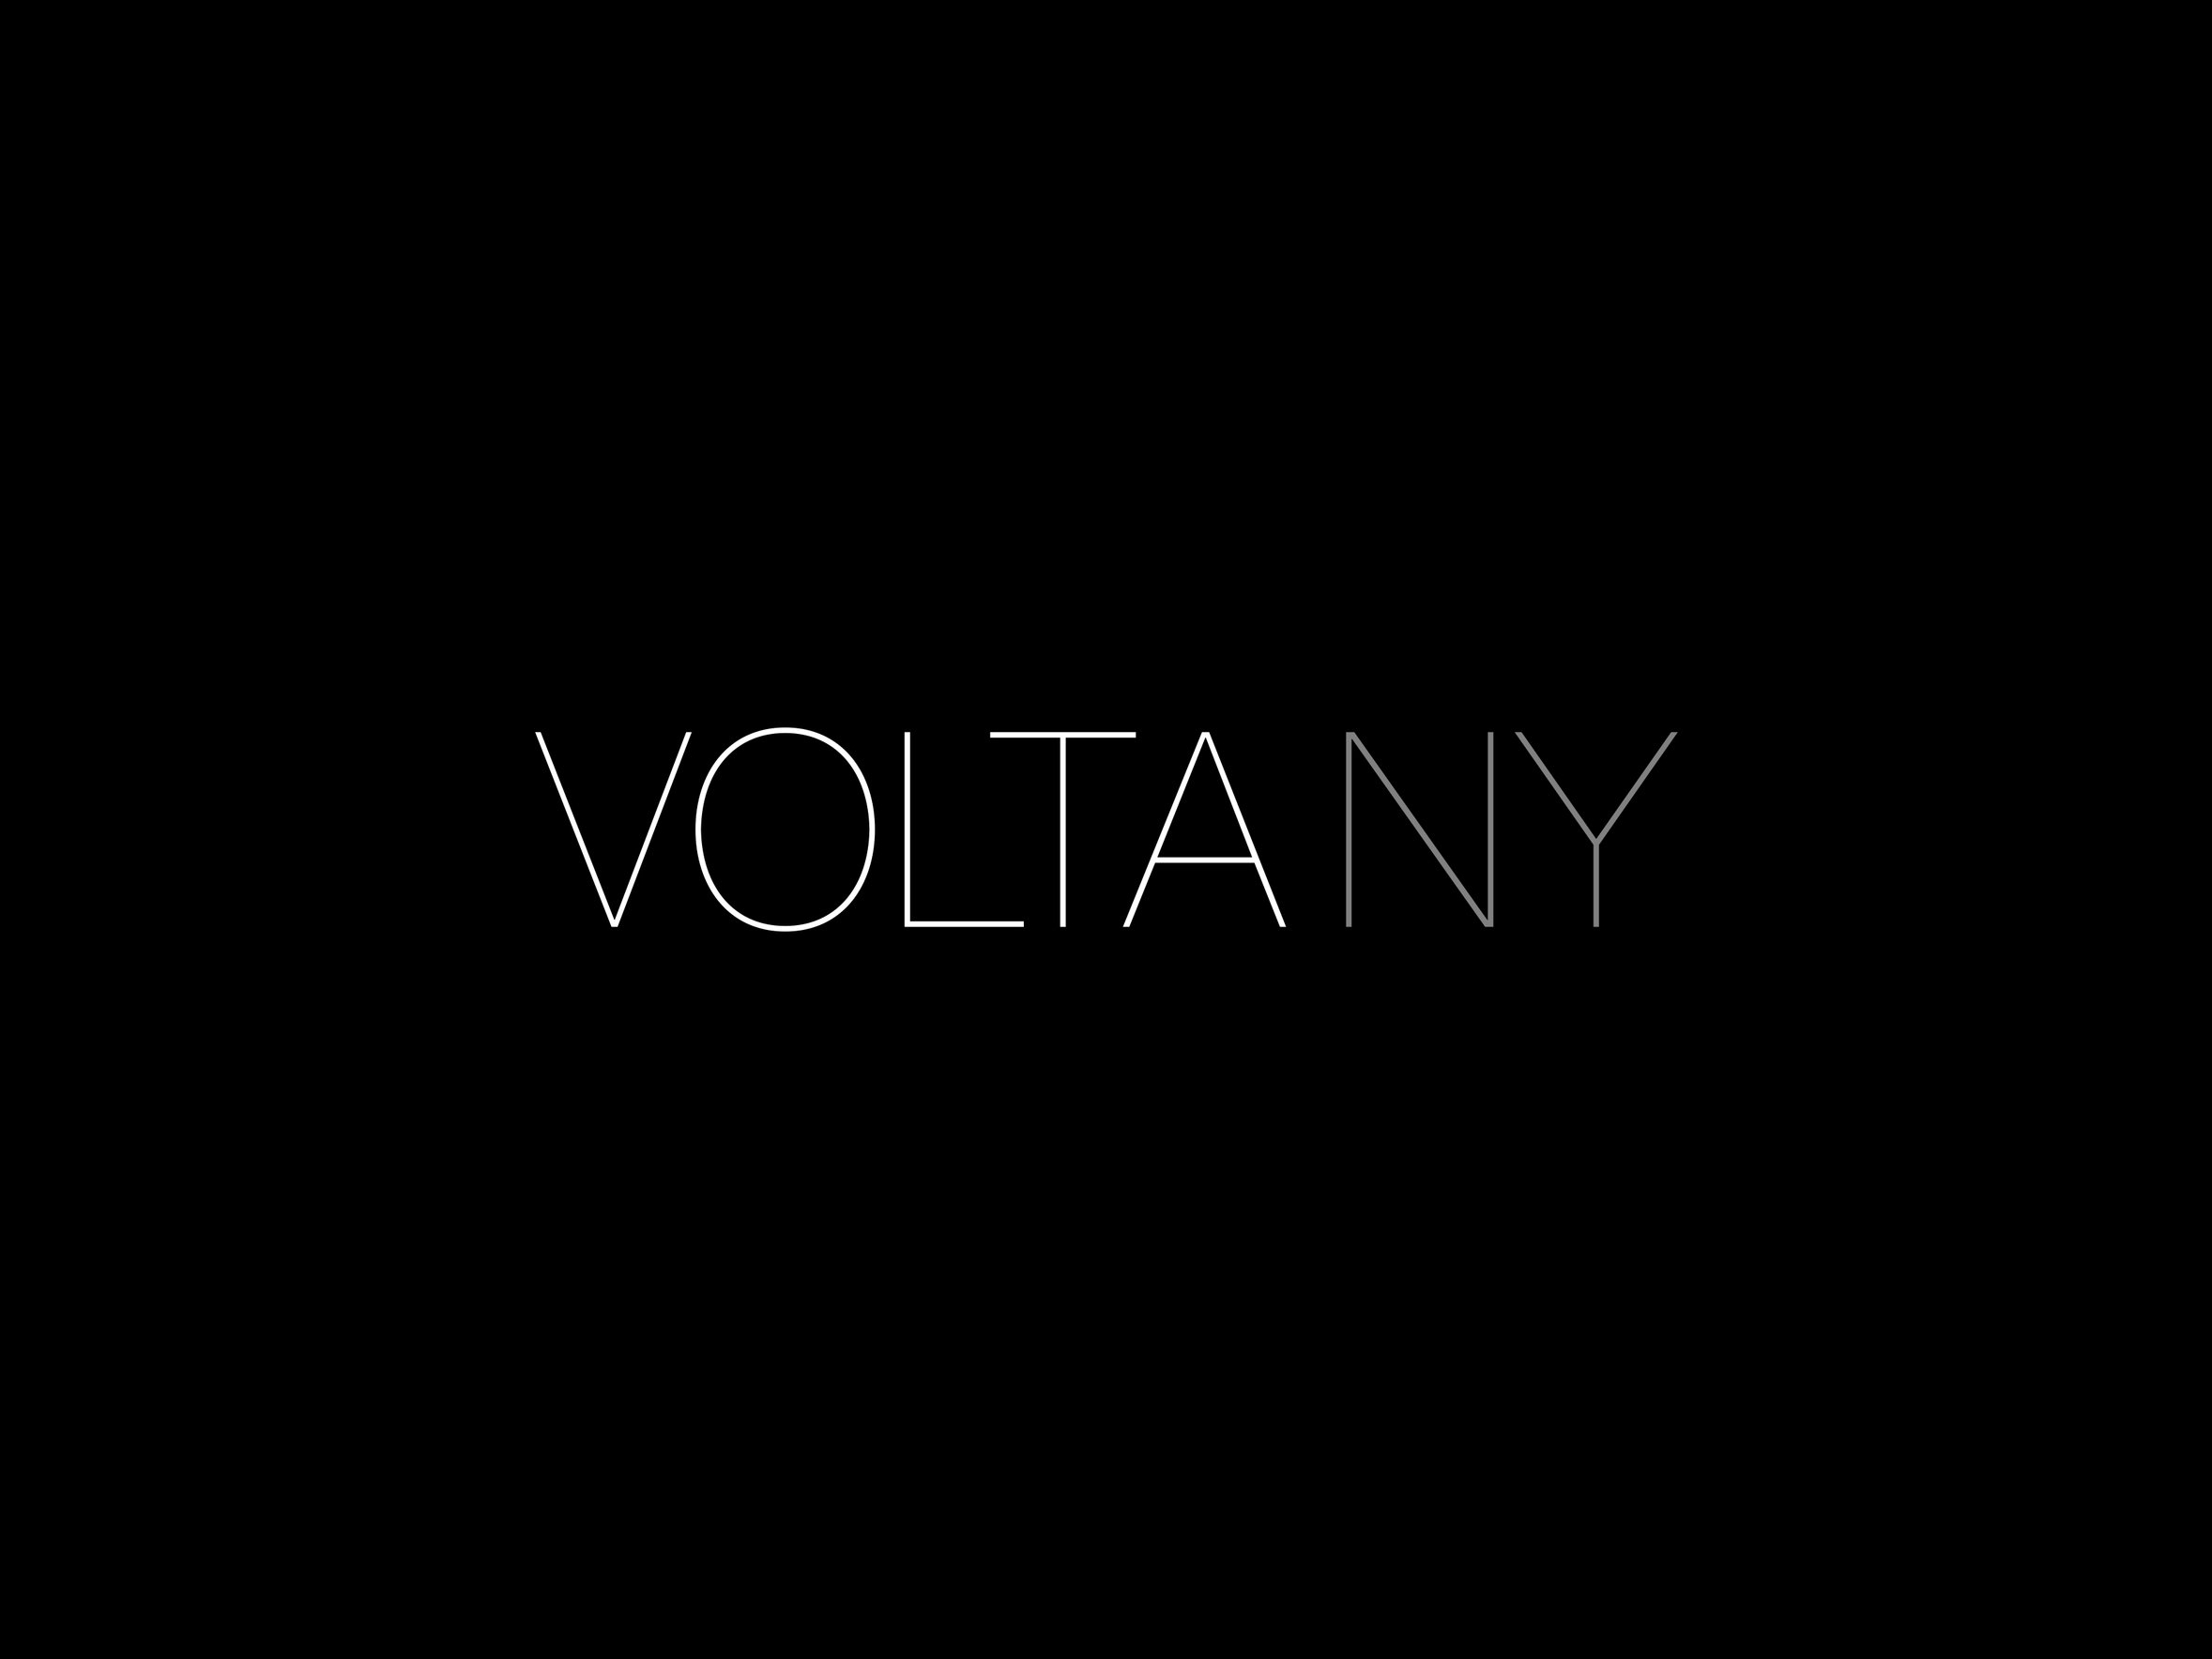 VOLTA NY   From March 7 to 11, 2018 @ PIER 90,   12th Avenue (At W 50th Street)